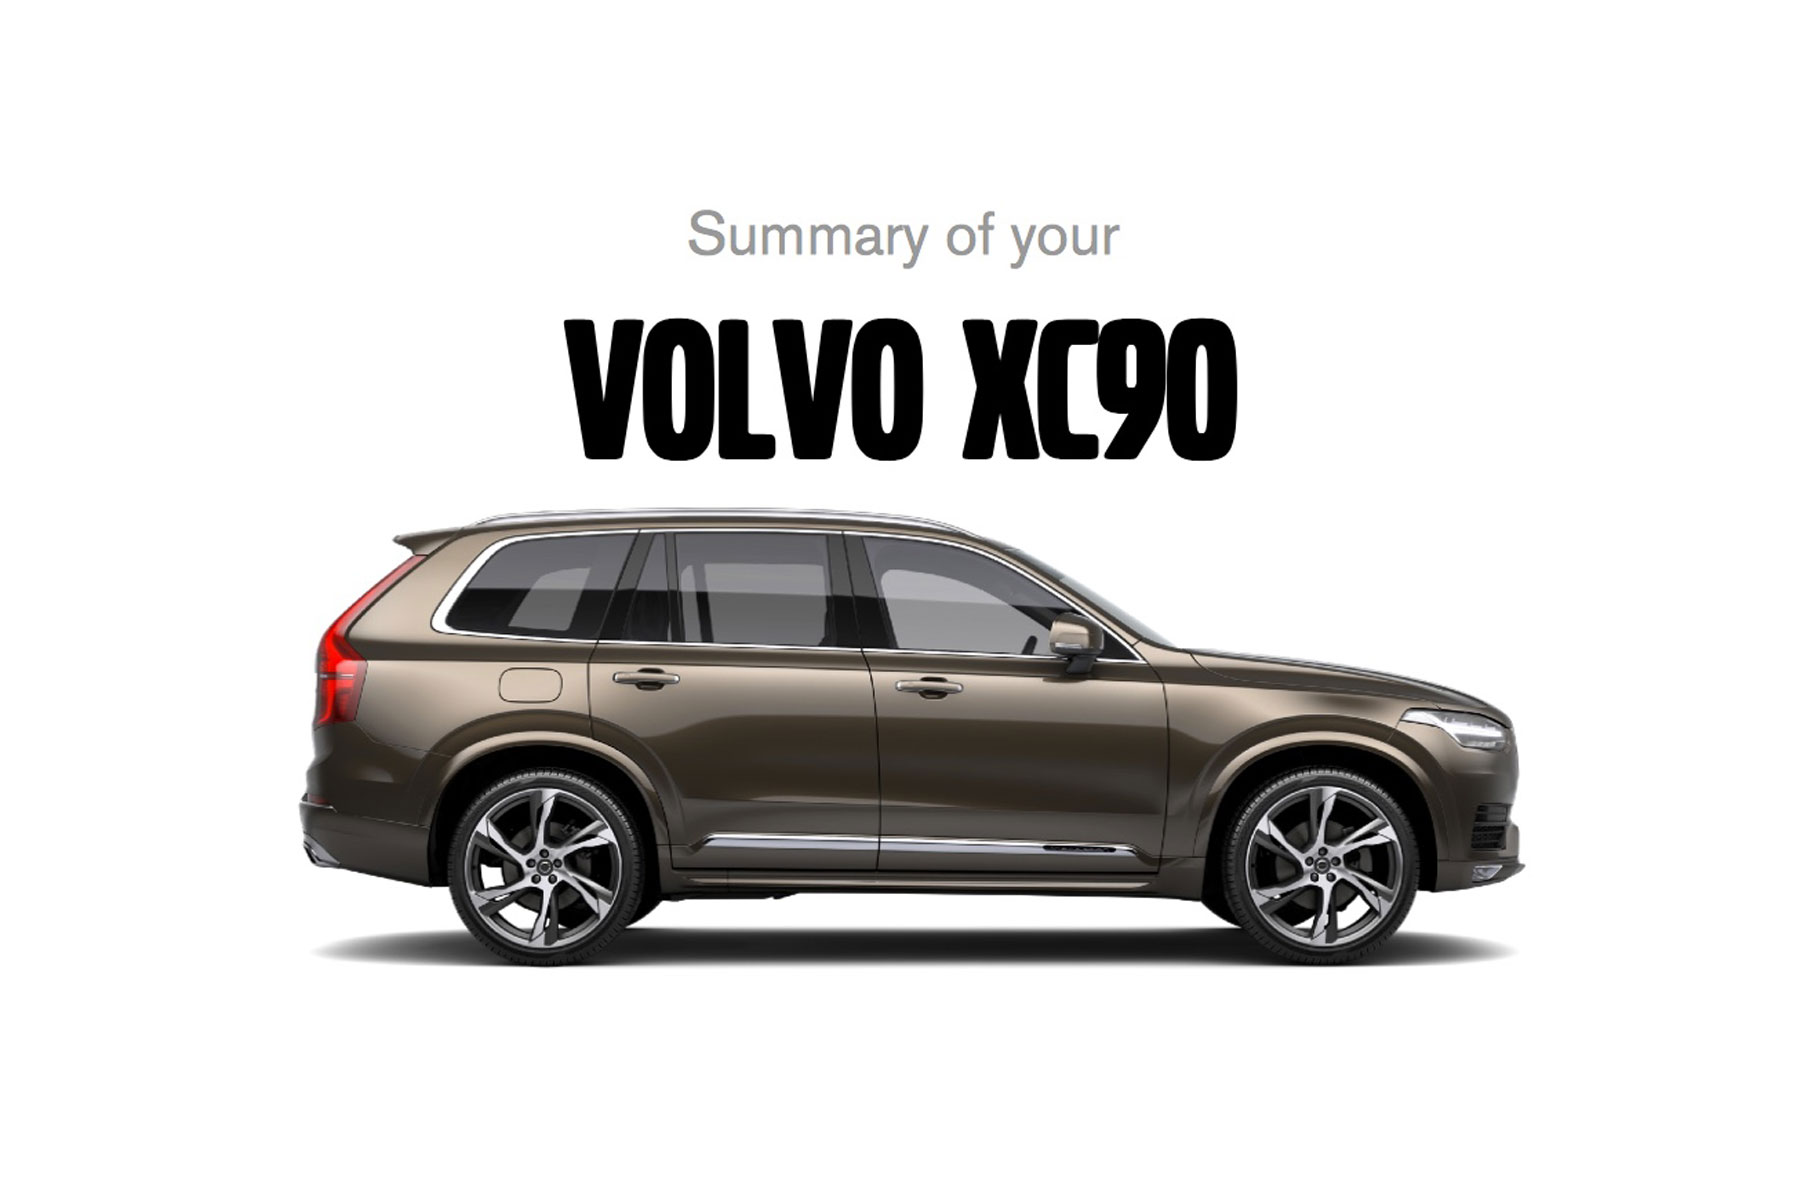 My ideal Volvo XC90